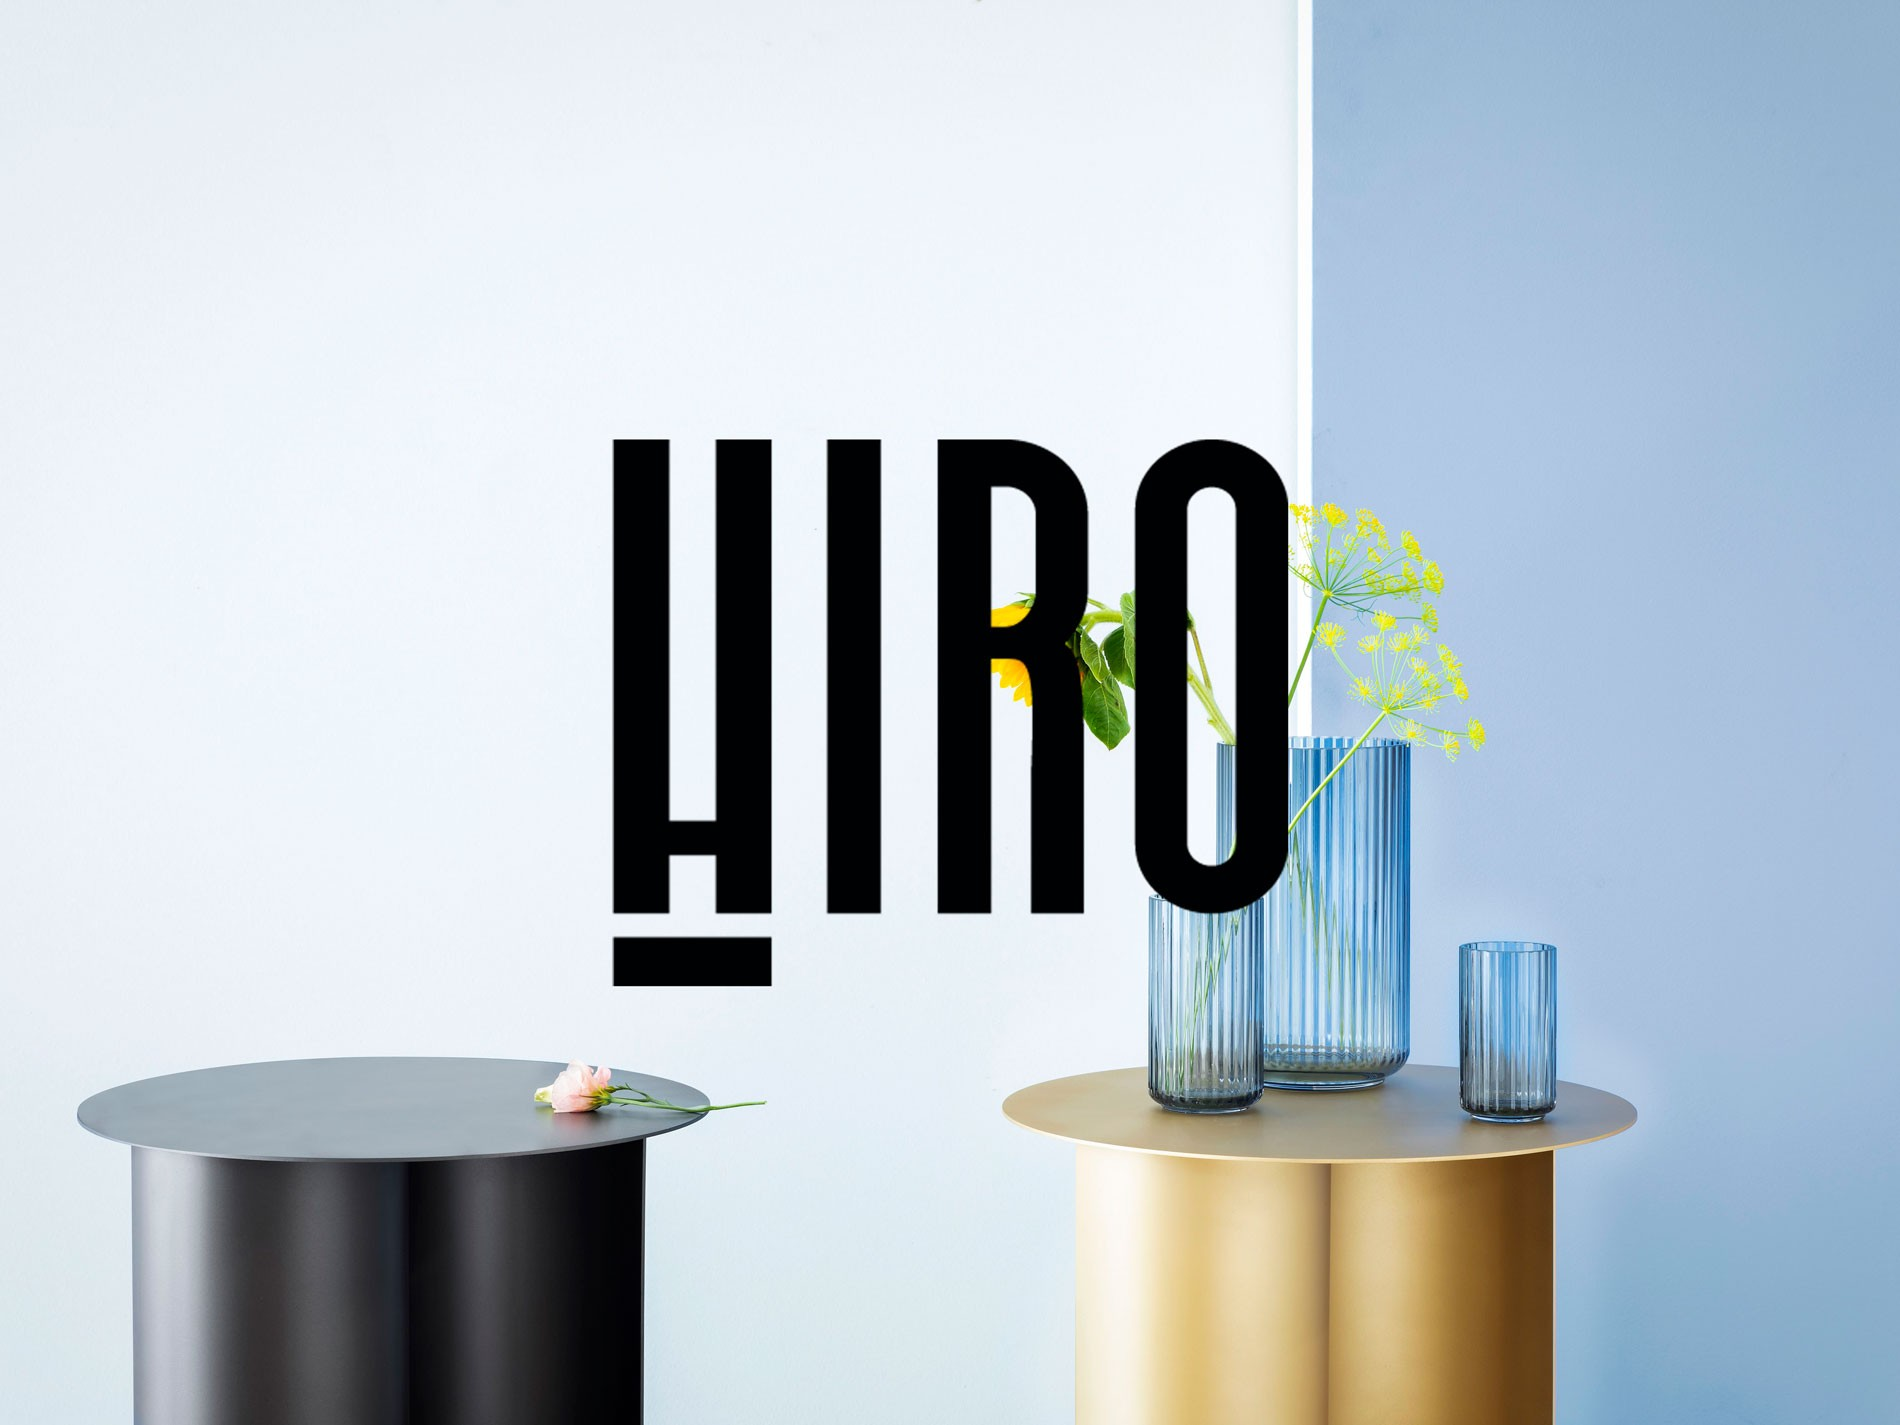 Hiro Verona open company independent design